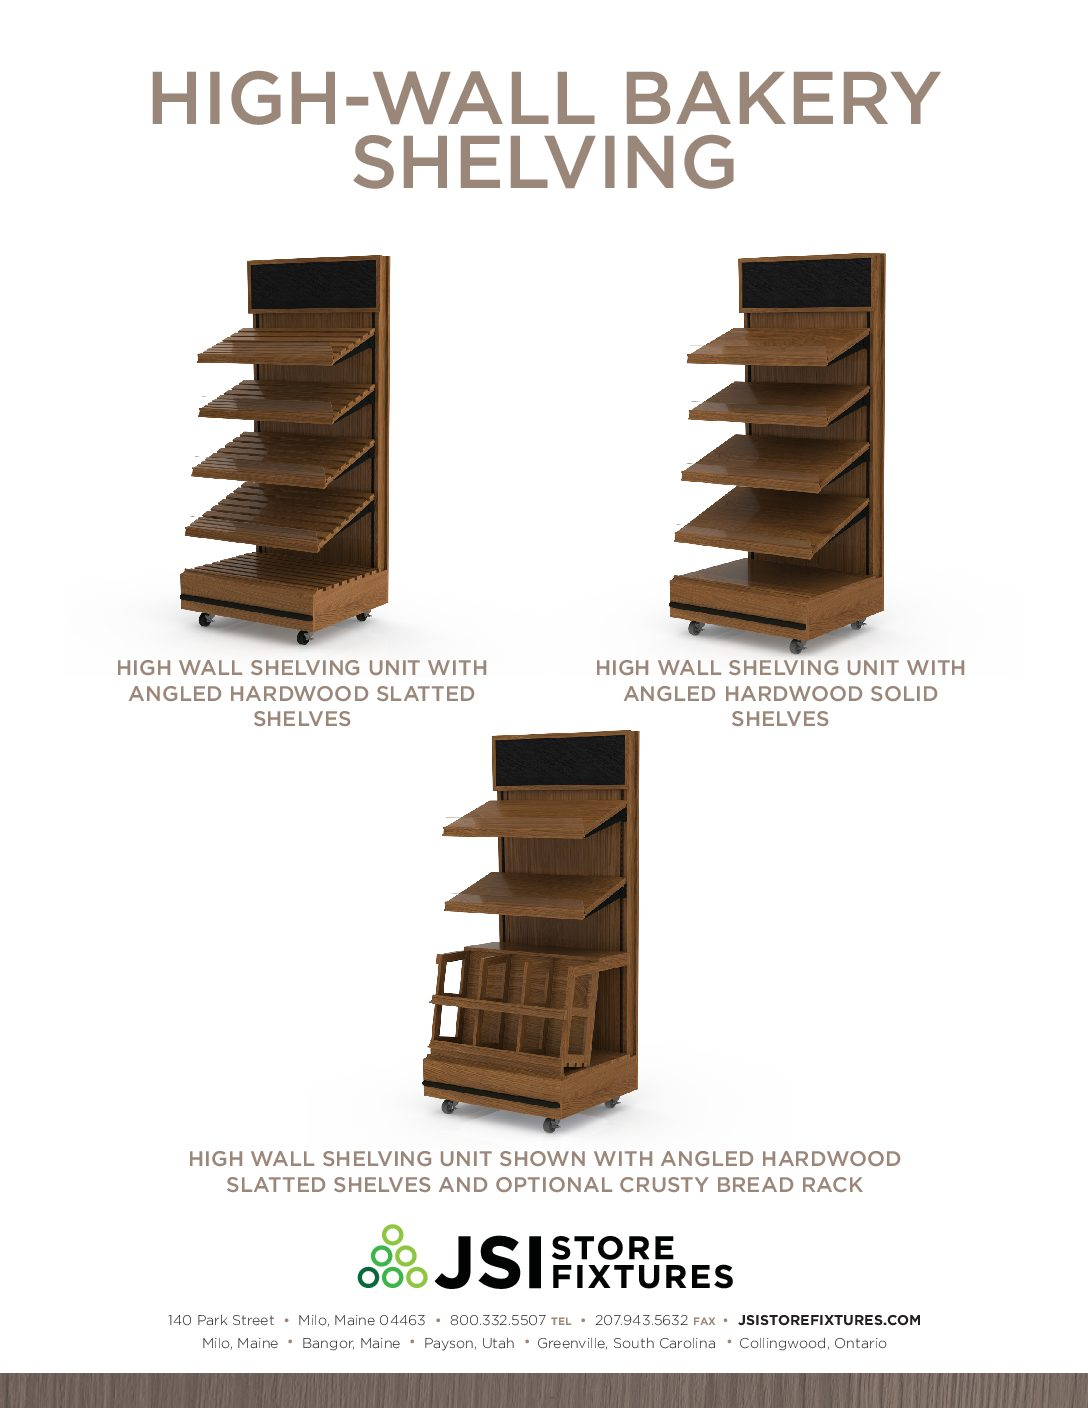 High-Wall Bakery Shelving Spec Sheet